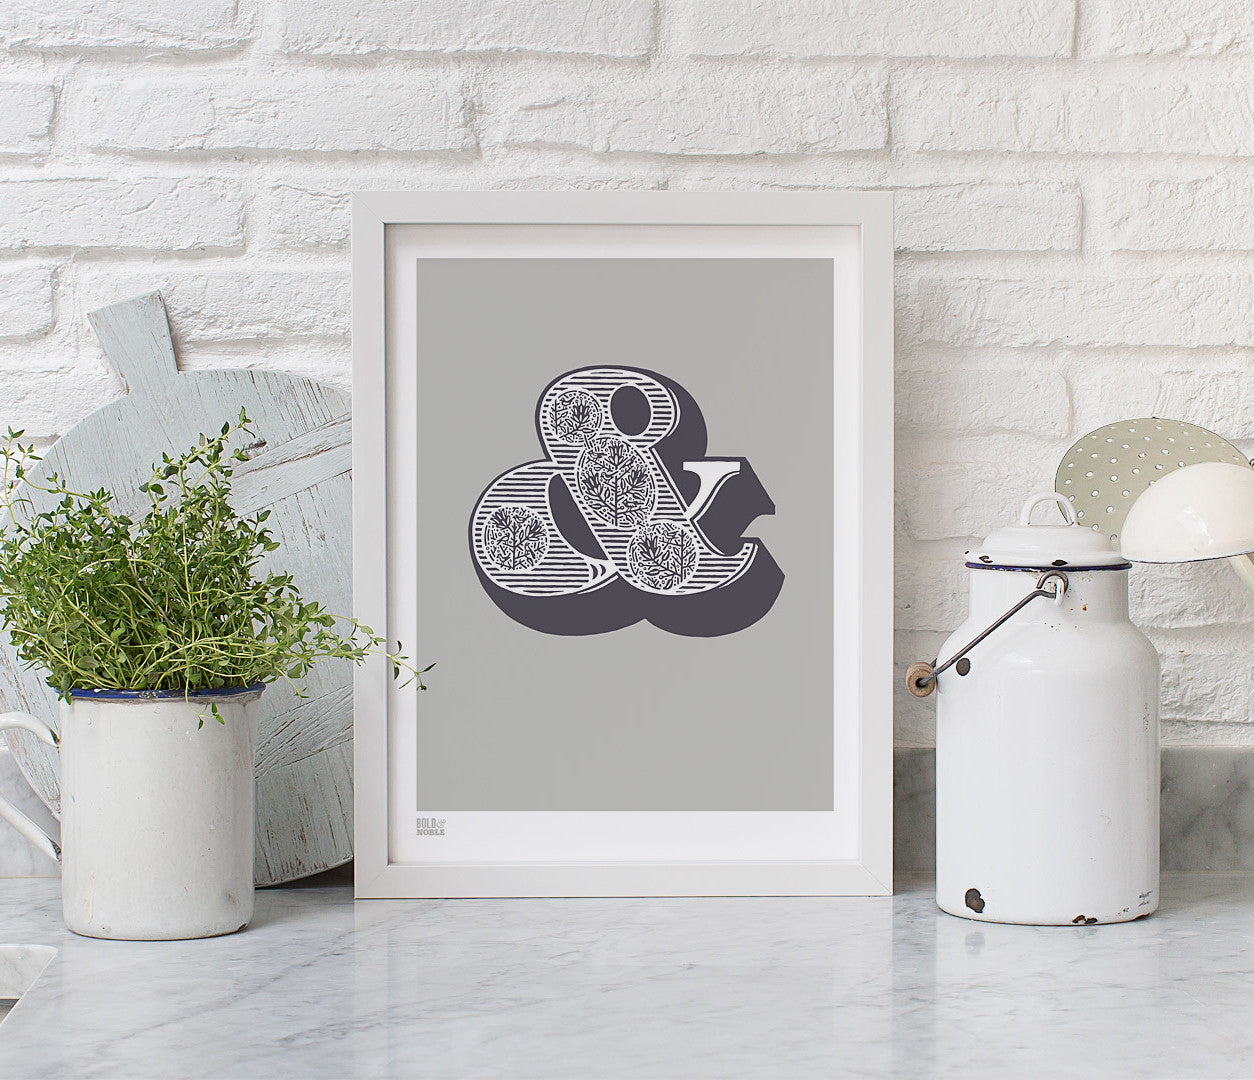 '& Ampersand' Illustrated Art Print in Putty